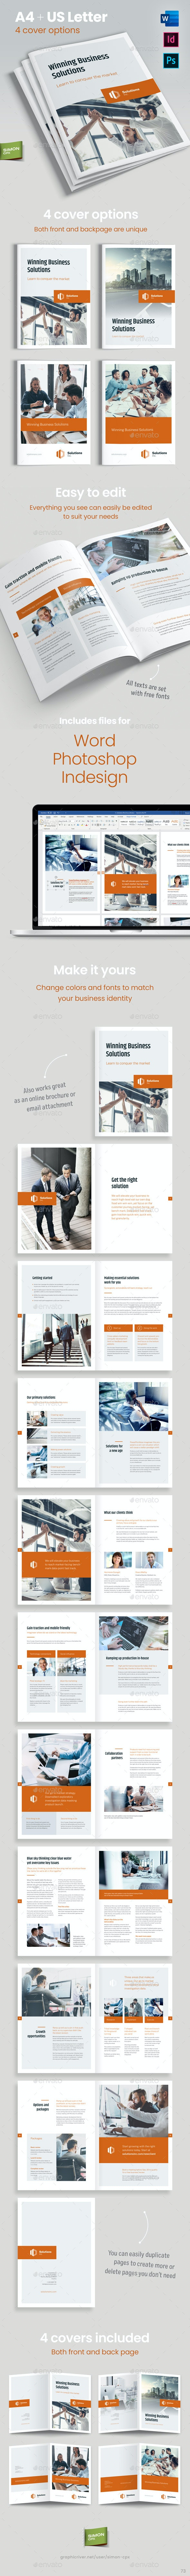 Solutions Inc. – Brochure Template for Indesign, Photoshop and Word - Brochures Print Templates